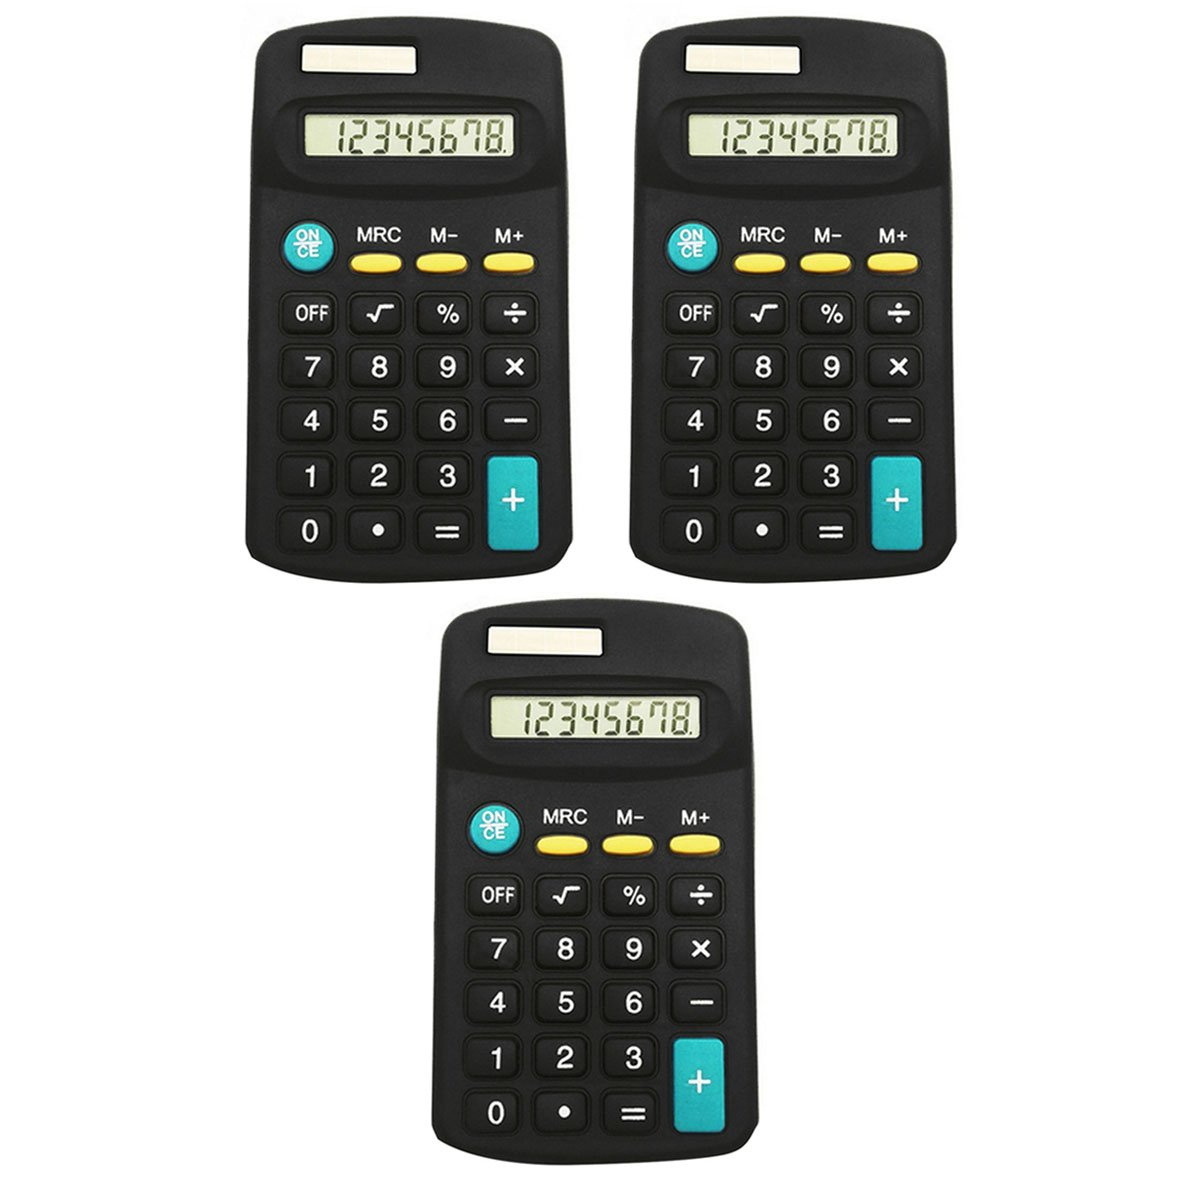 CLARA 3pcs 8-Digit Small Electronic Calculator Portable Handheld Auto Power Off Calculator for Office Financial Home School Students Use(3pcs, Black)